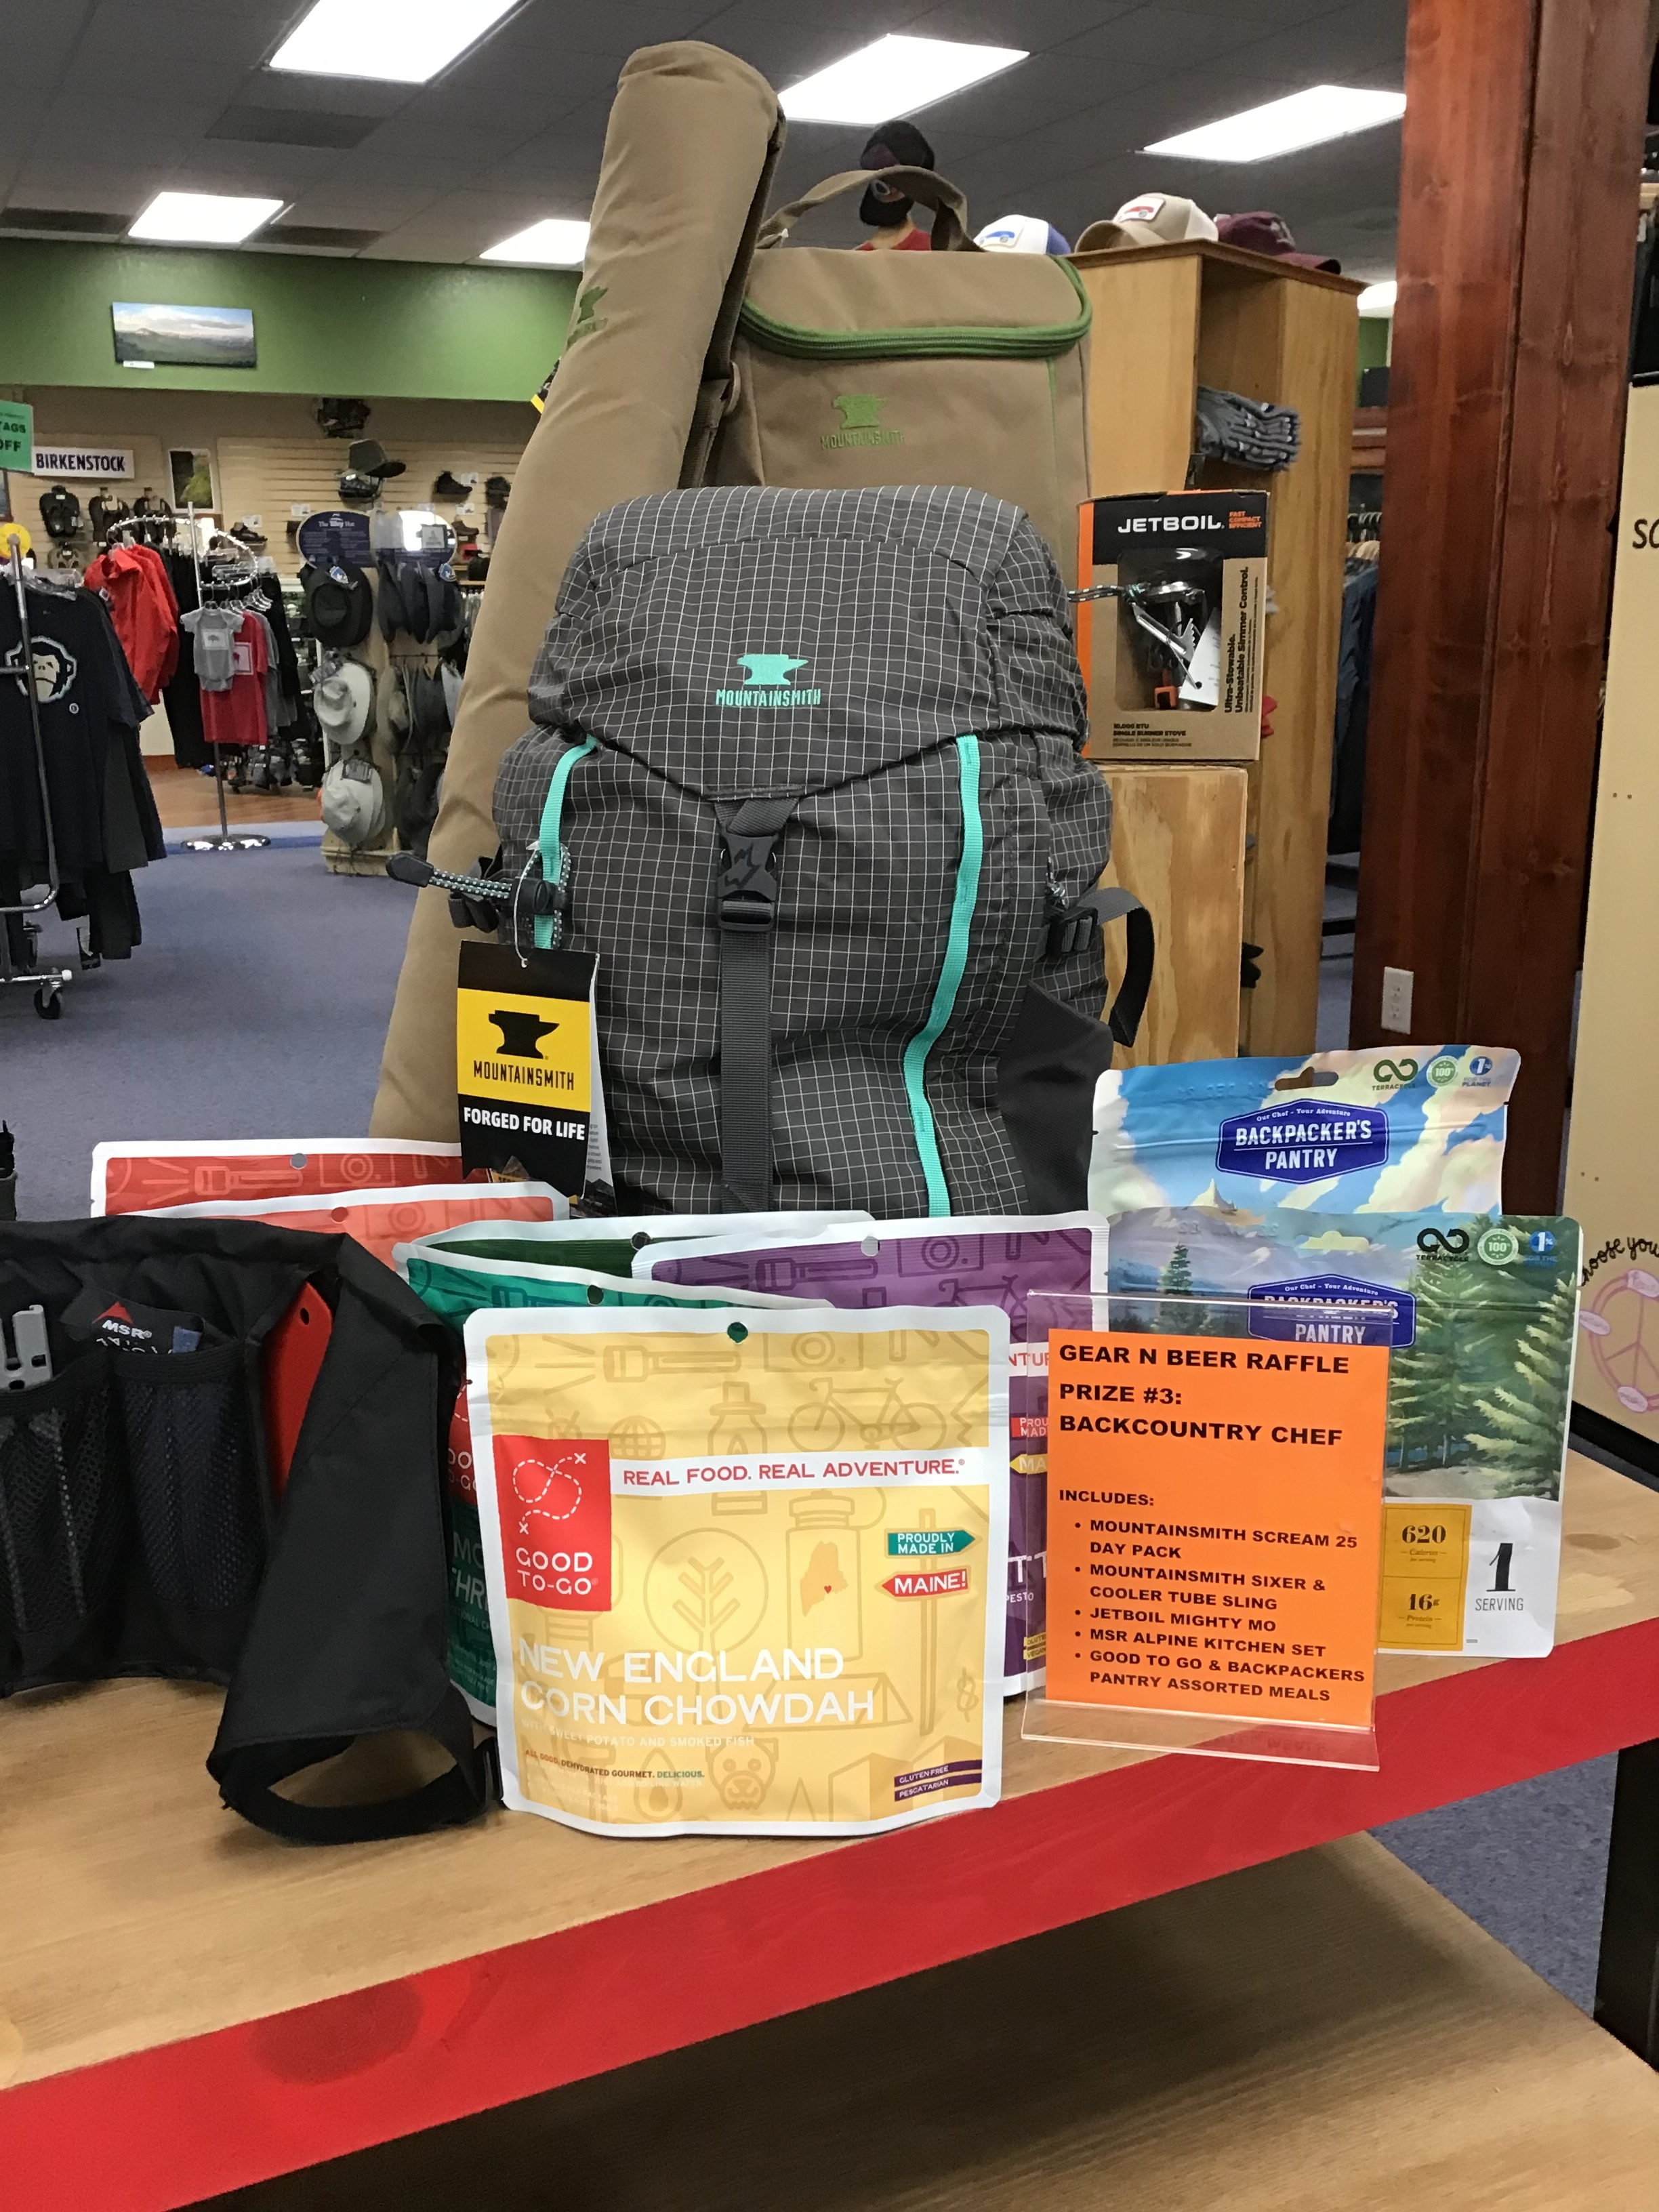 RAFFLE PRIZE #3- Backcountry Chef - Mountainsmith Scream 25 DaypackMountainsmith Sixer CoolerMountainsmith Cooler Tube SlingJetboil Mighty Mo Cook SystemMSR Alpine Kitchen SetGood To Go Backpacking MealsBackpacker Pantry Backpacking MealsAPPROXIMATE VALUE: $